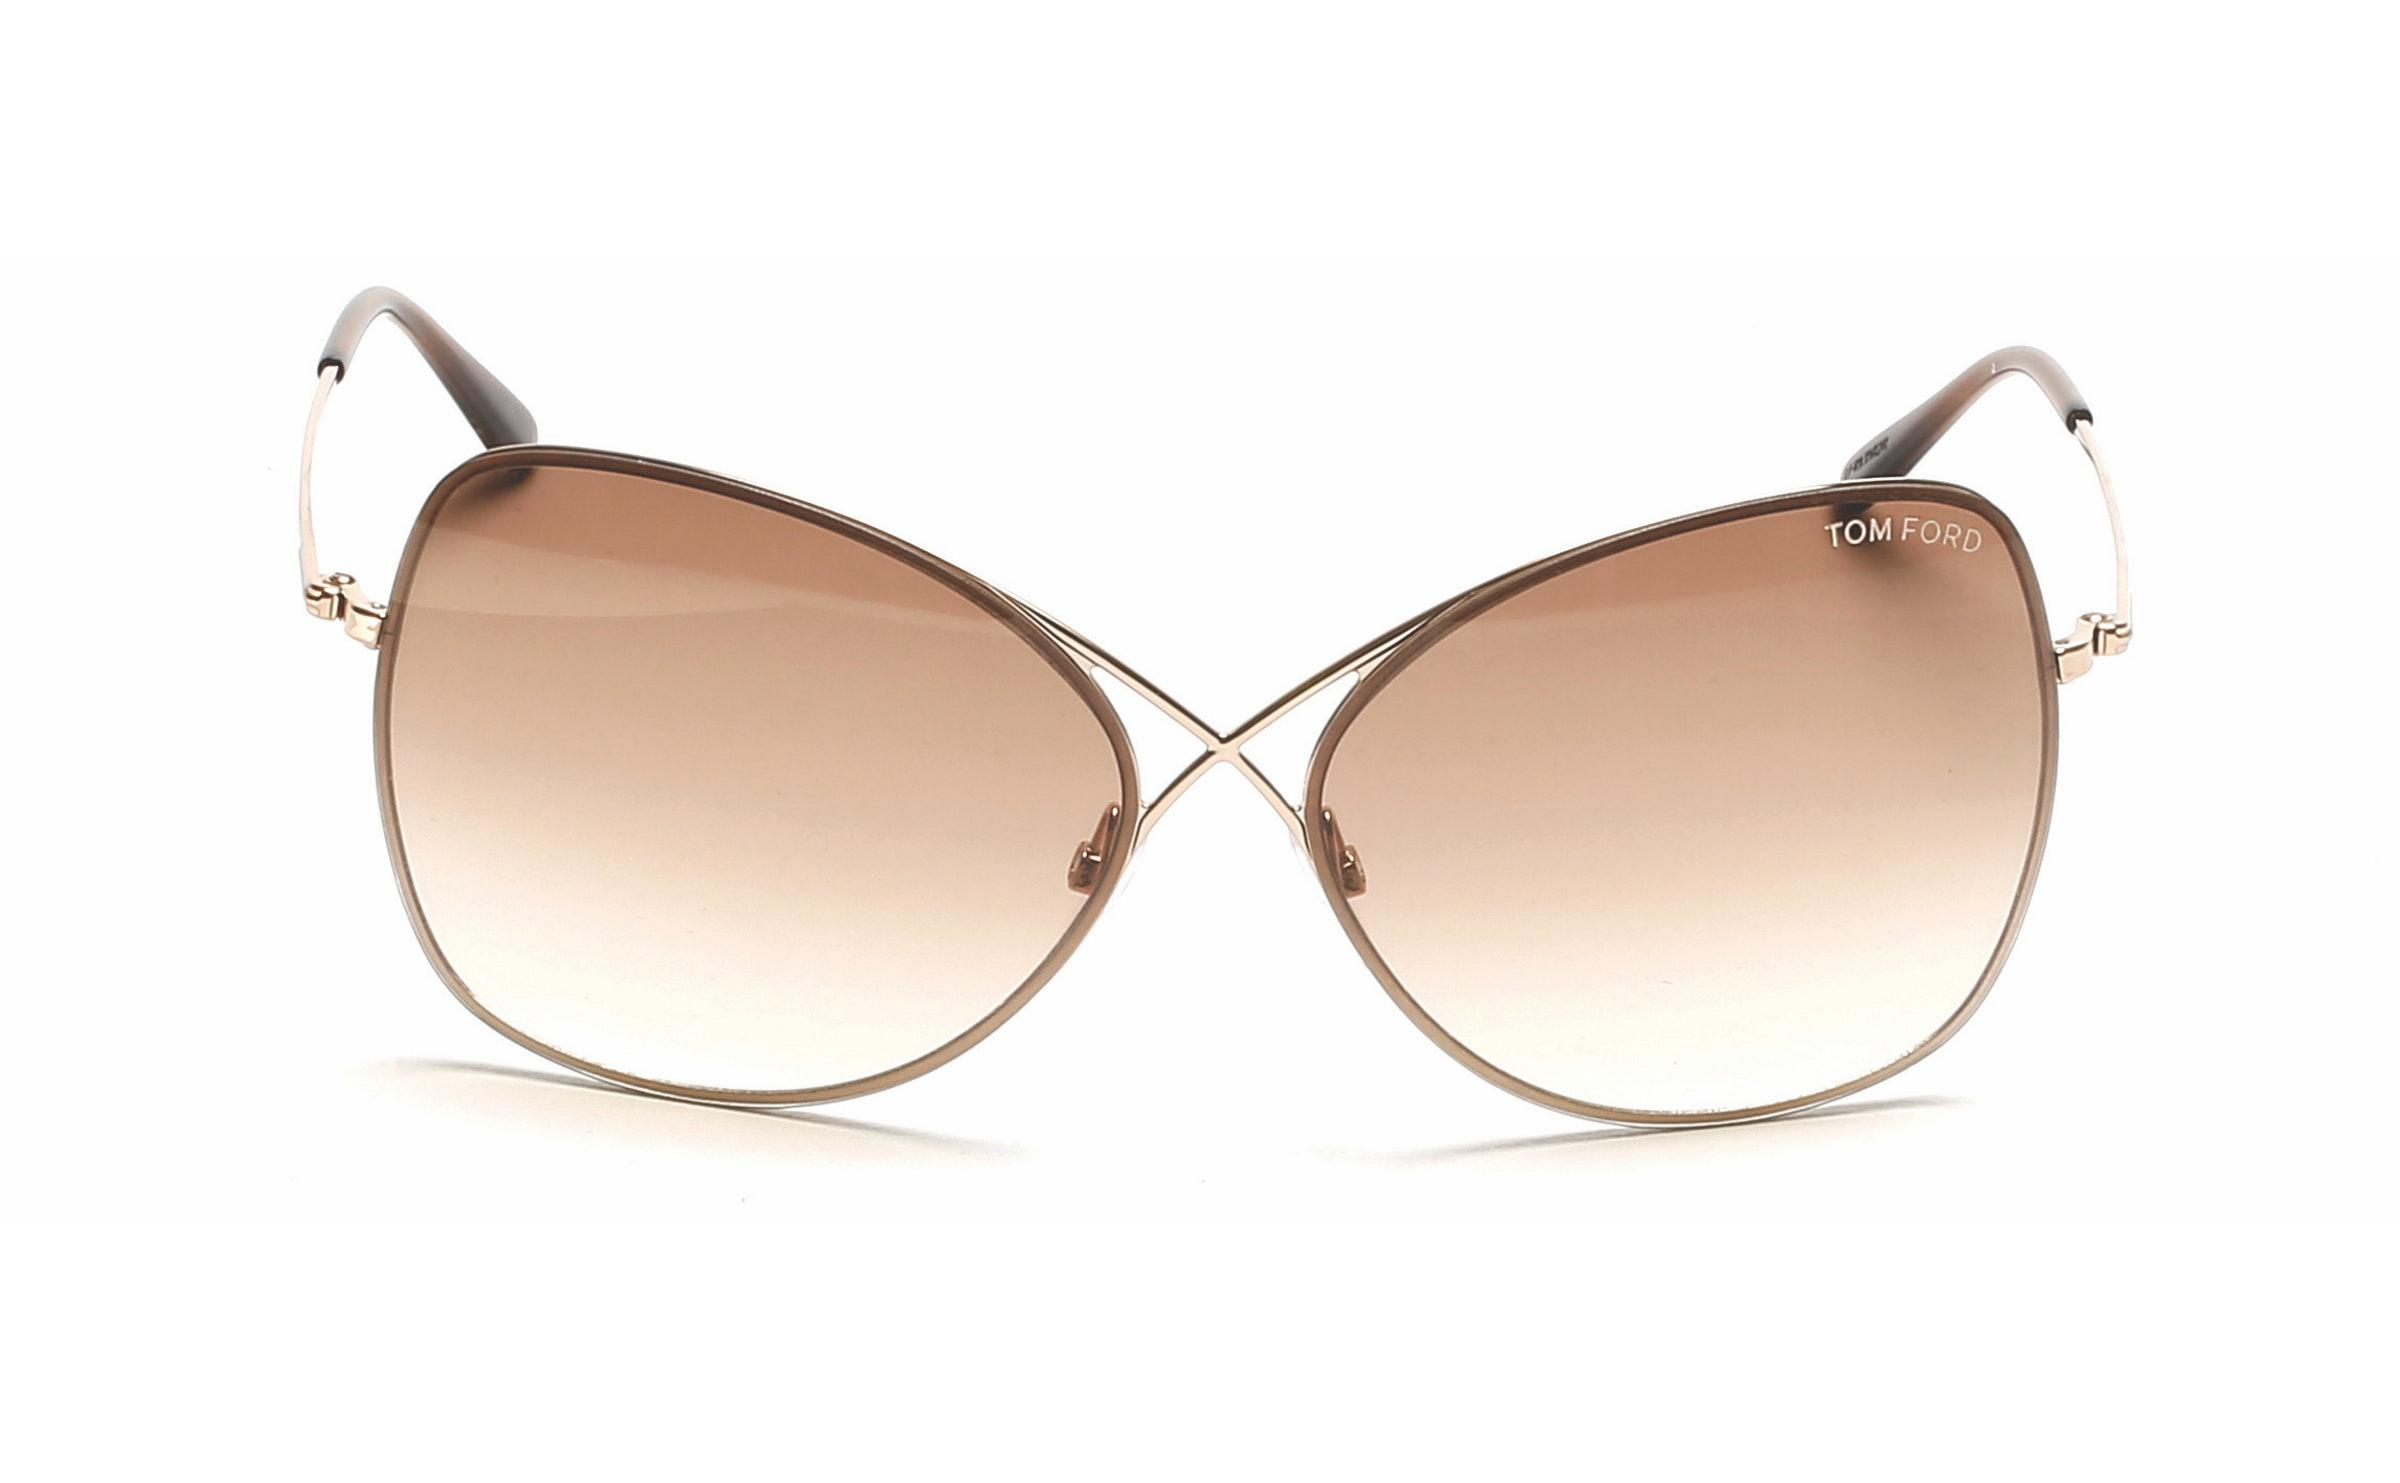 f9c741b1aa4f Lyst - Tom Ford 0250 Colette Modified Oval Sunglasses in Brown